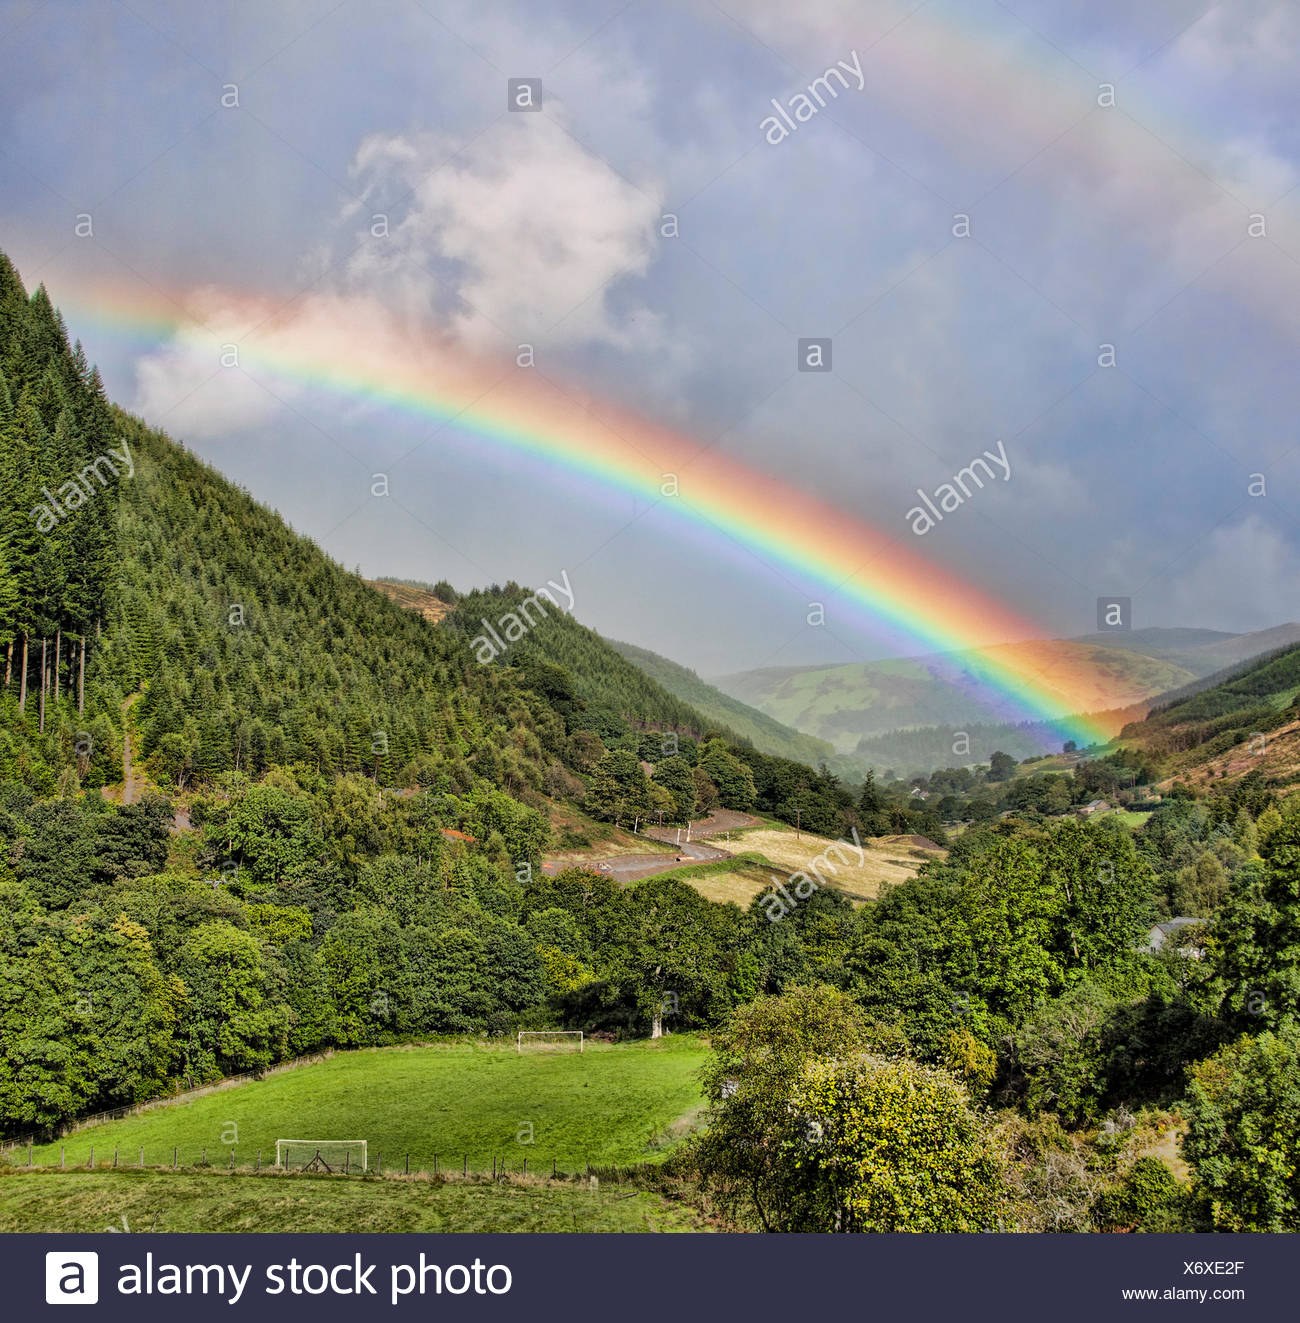 View of double rainbow above valley - Stock Image